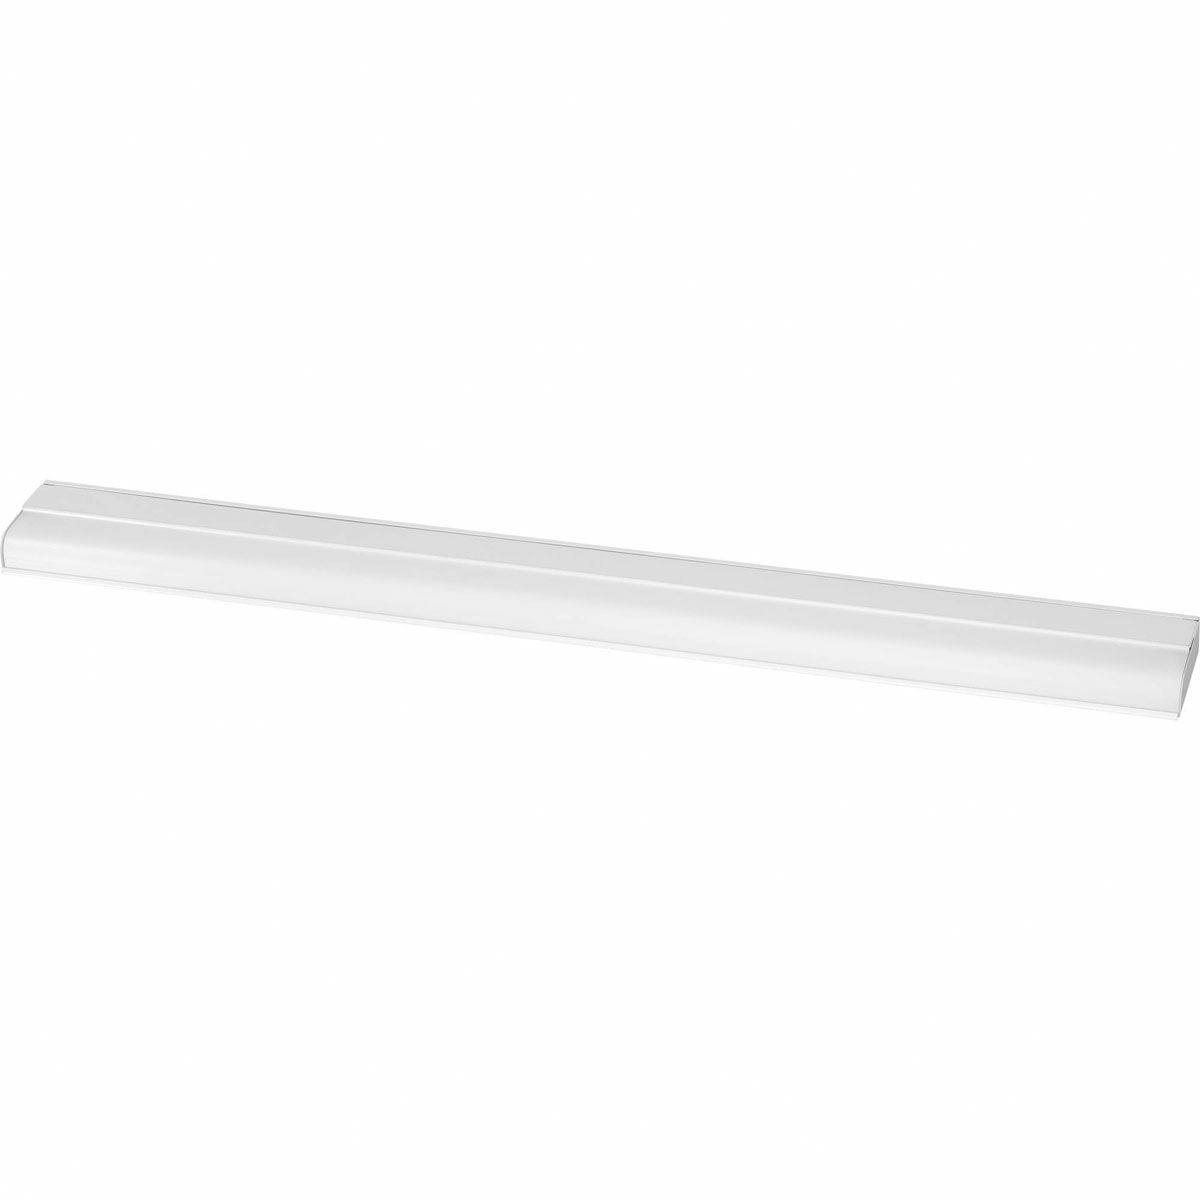 Under Cabinet Bar Light (Set of 6) Size: 1